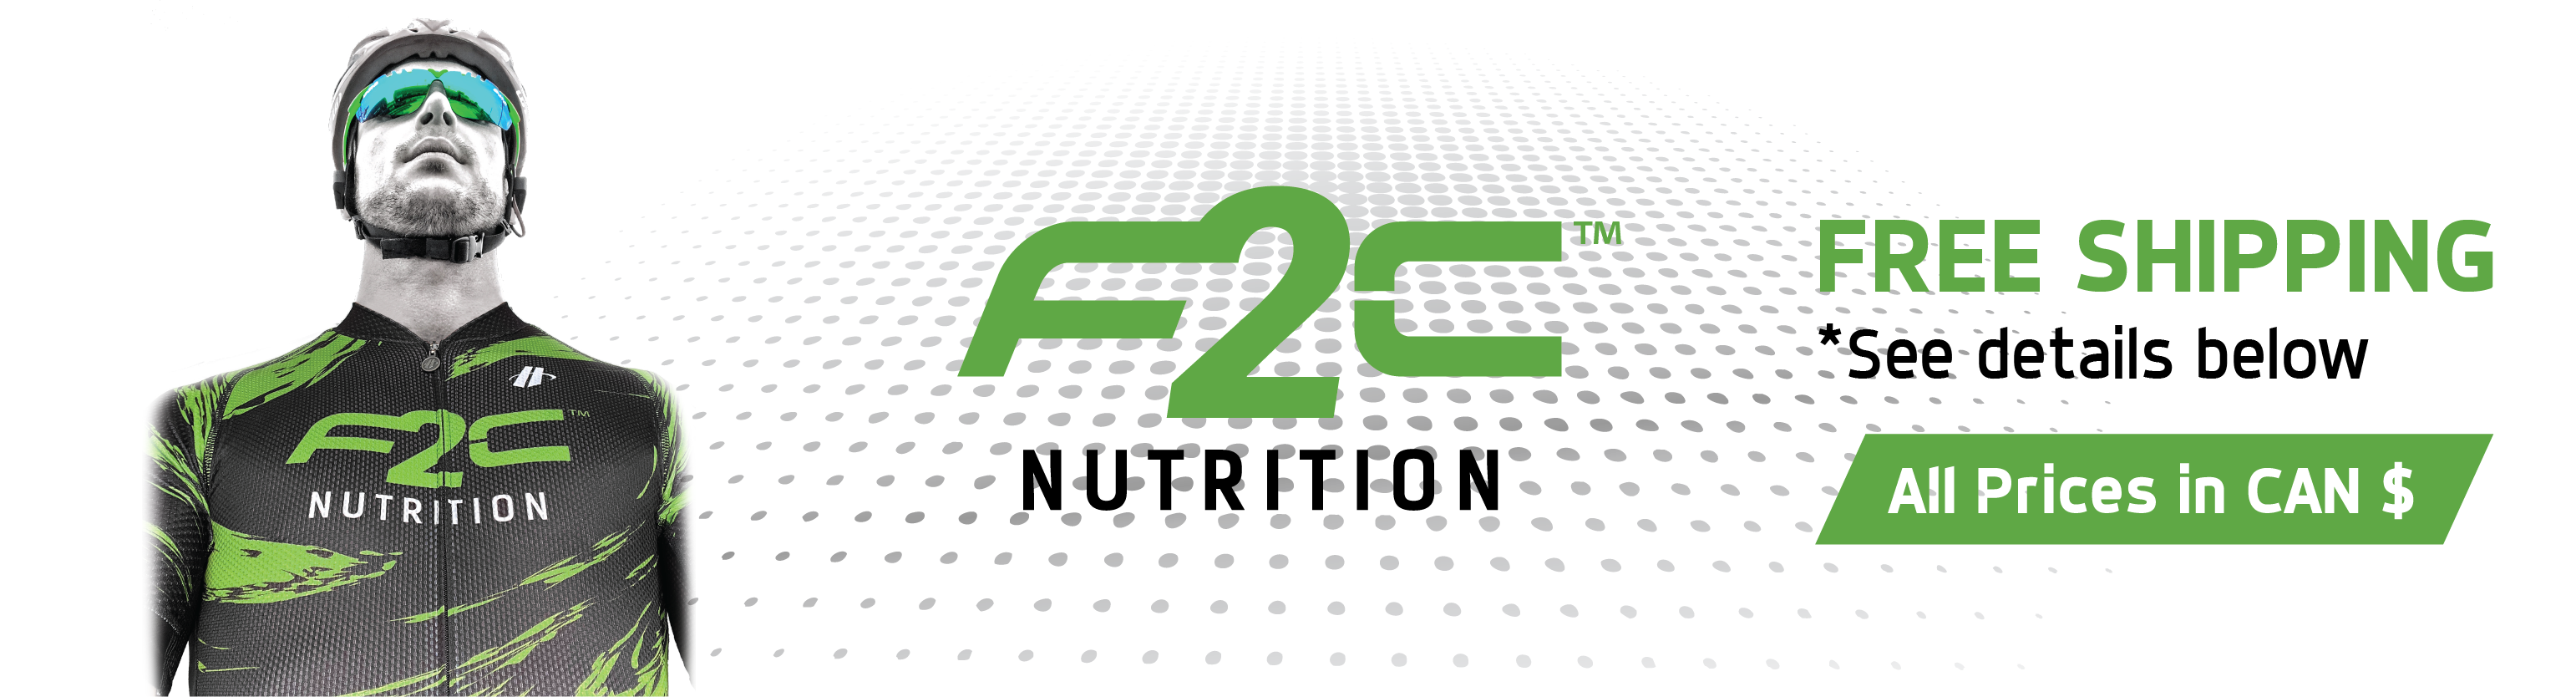 F2C NUTRITION - BEST NUTRITION ON EARTH